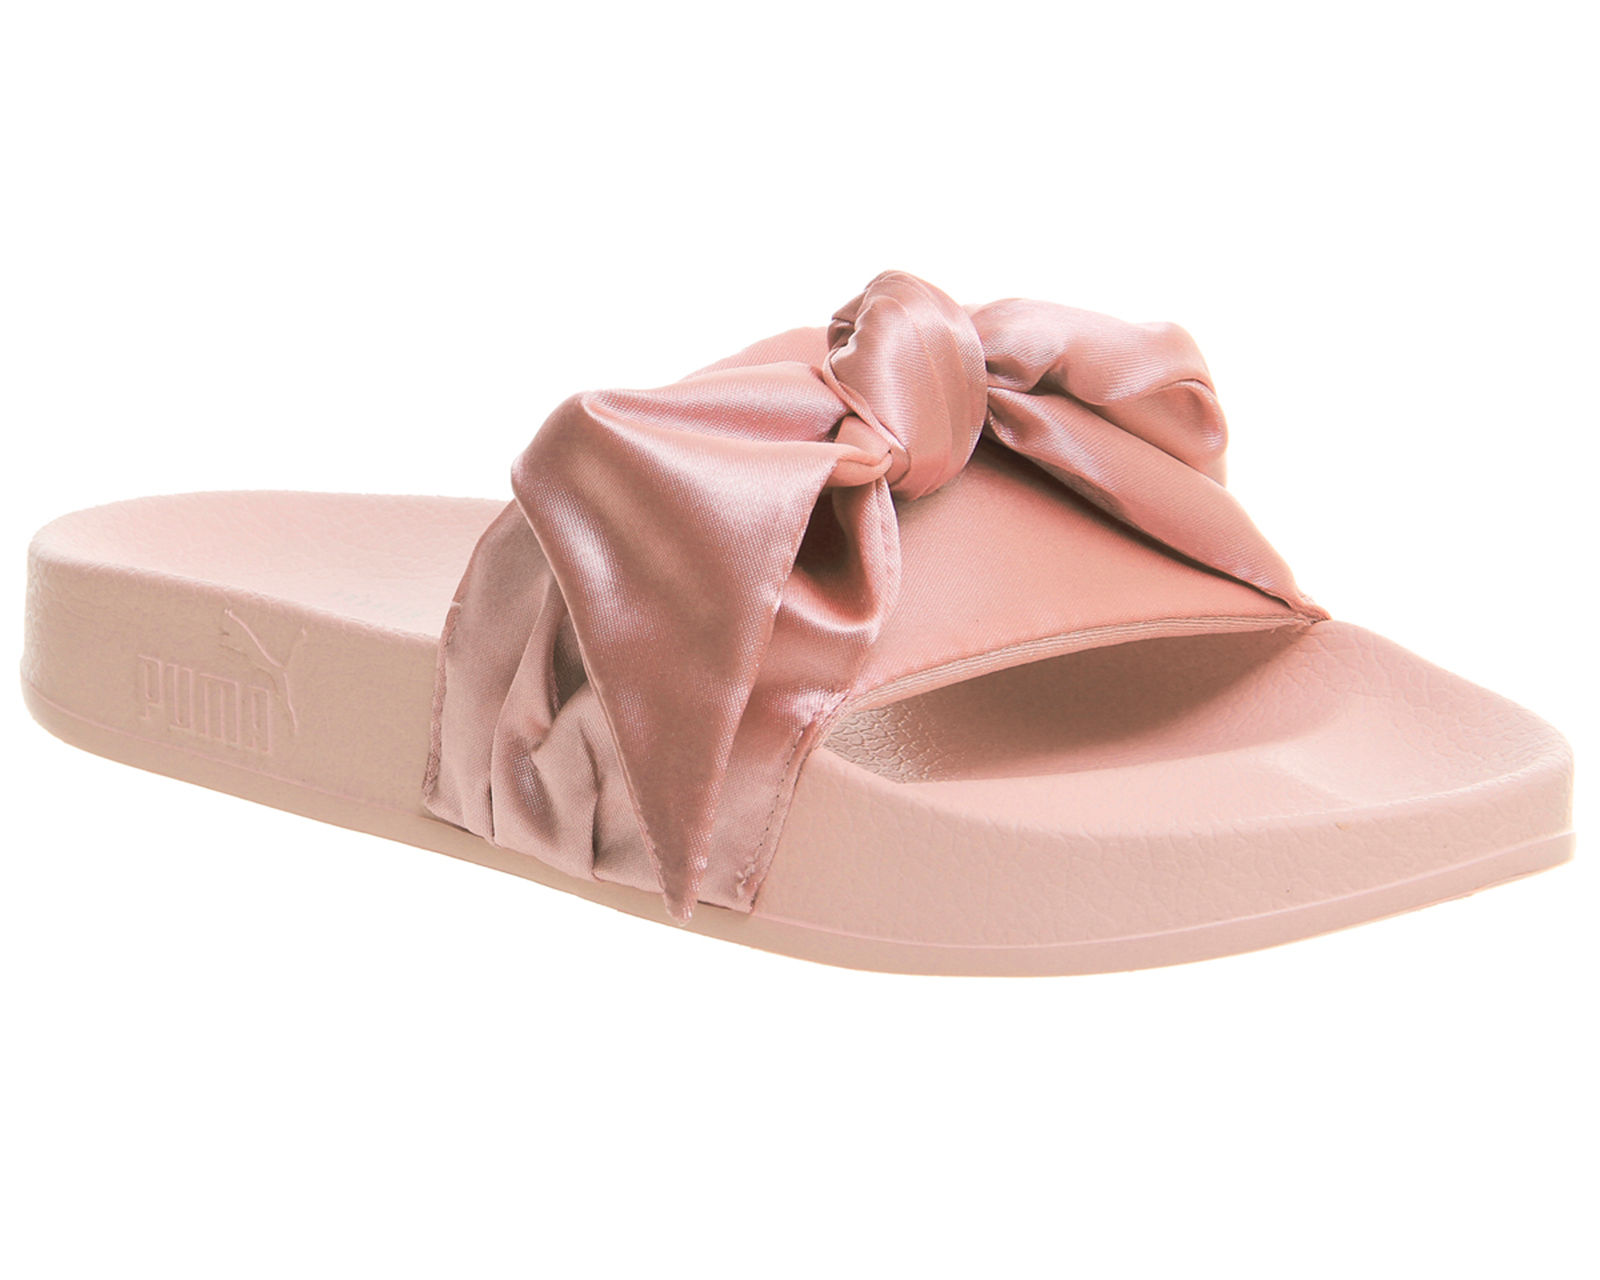 Puma Fenty Ribbon Slide